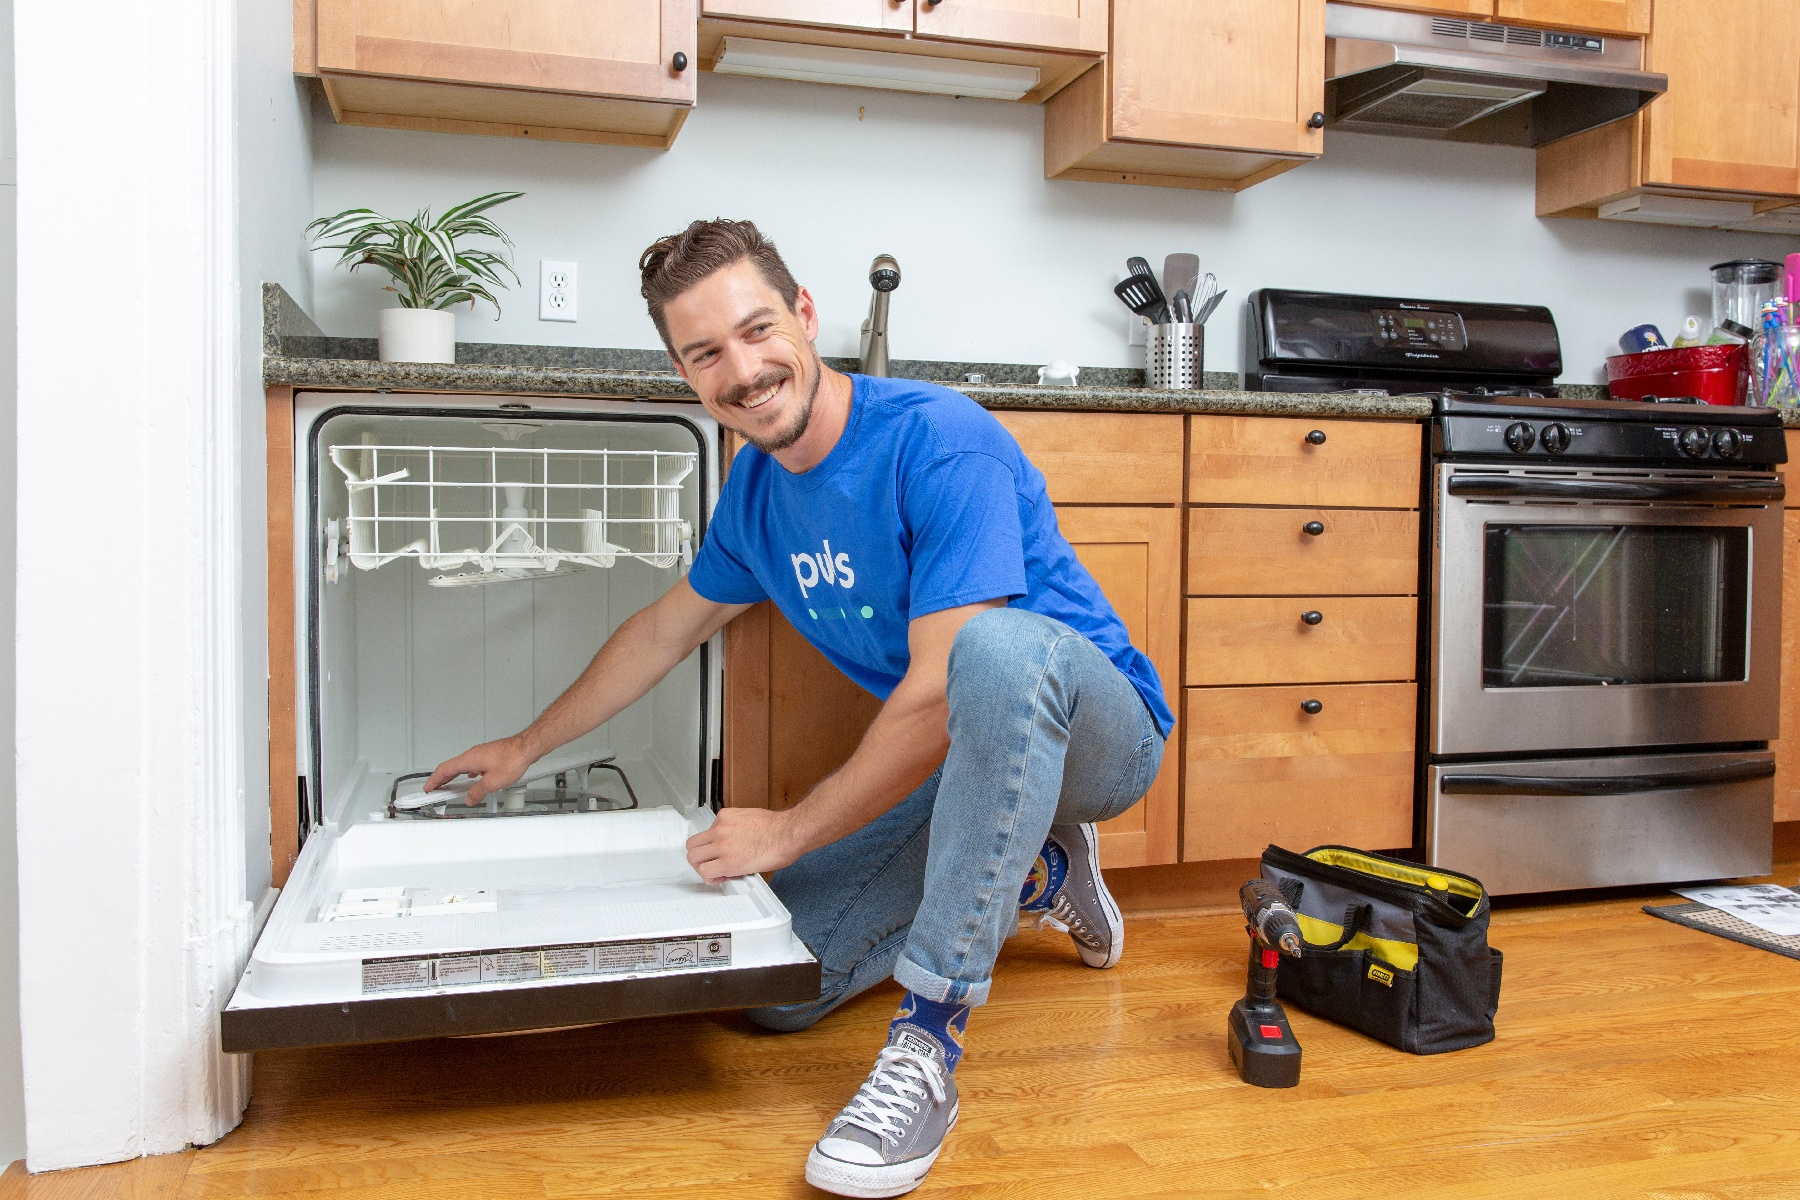 How to install a new dishwasher: make sure to prep your space properly.